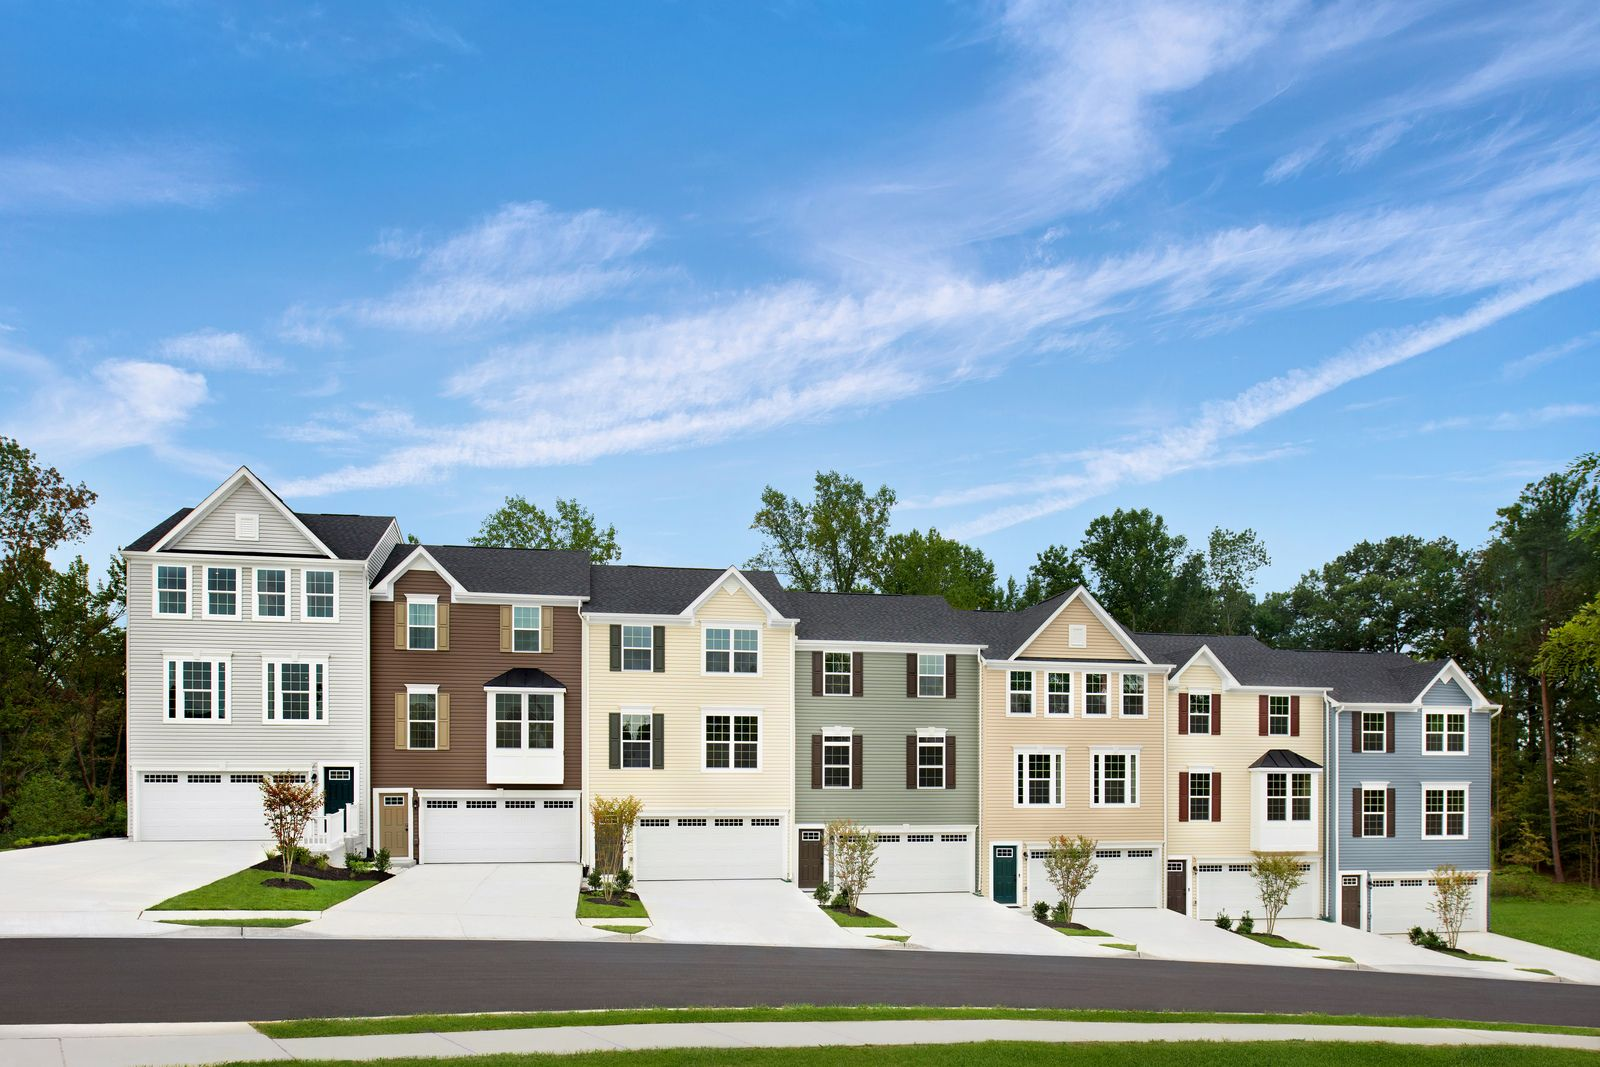 AFFORDABLE GARAGE TOWNHOMES SELLING FAST IN STAFFORD!:Welcome to Bells Hill Terrace: Brand new, affordable townhomes with 2-car garages and backyards, just 1.5 miles from I-95 from the high $300s!Stop renting and schedule your appointment!